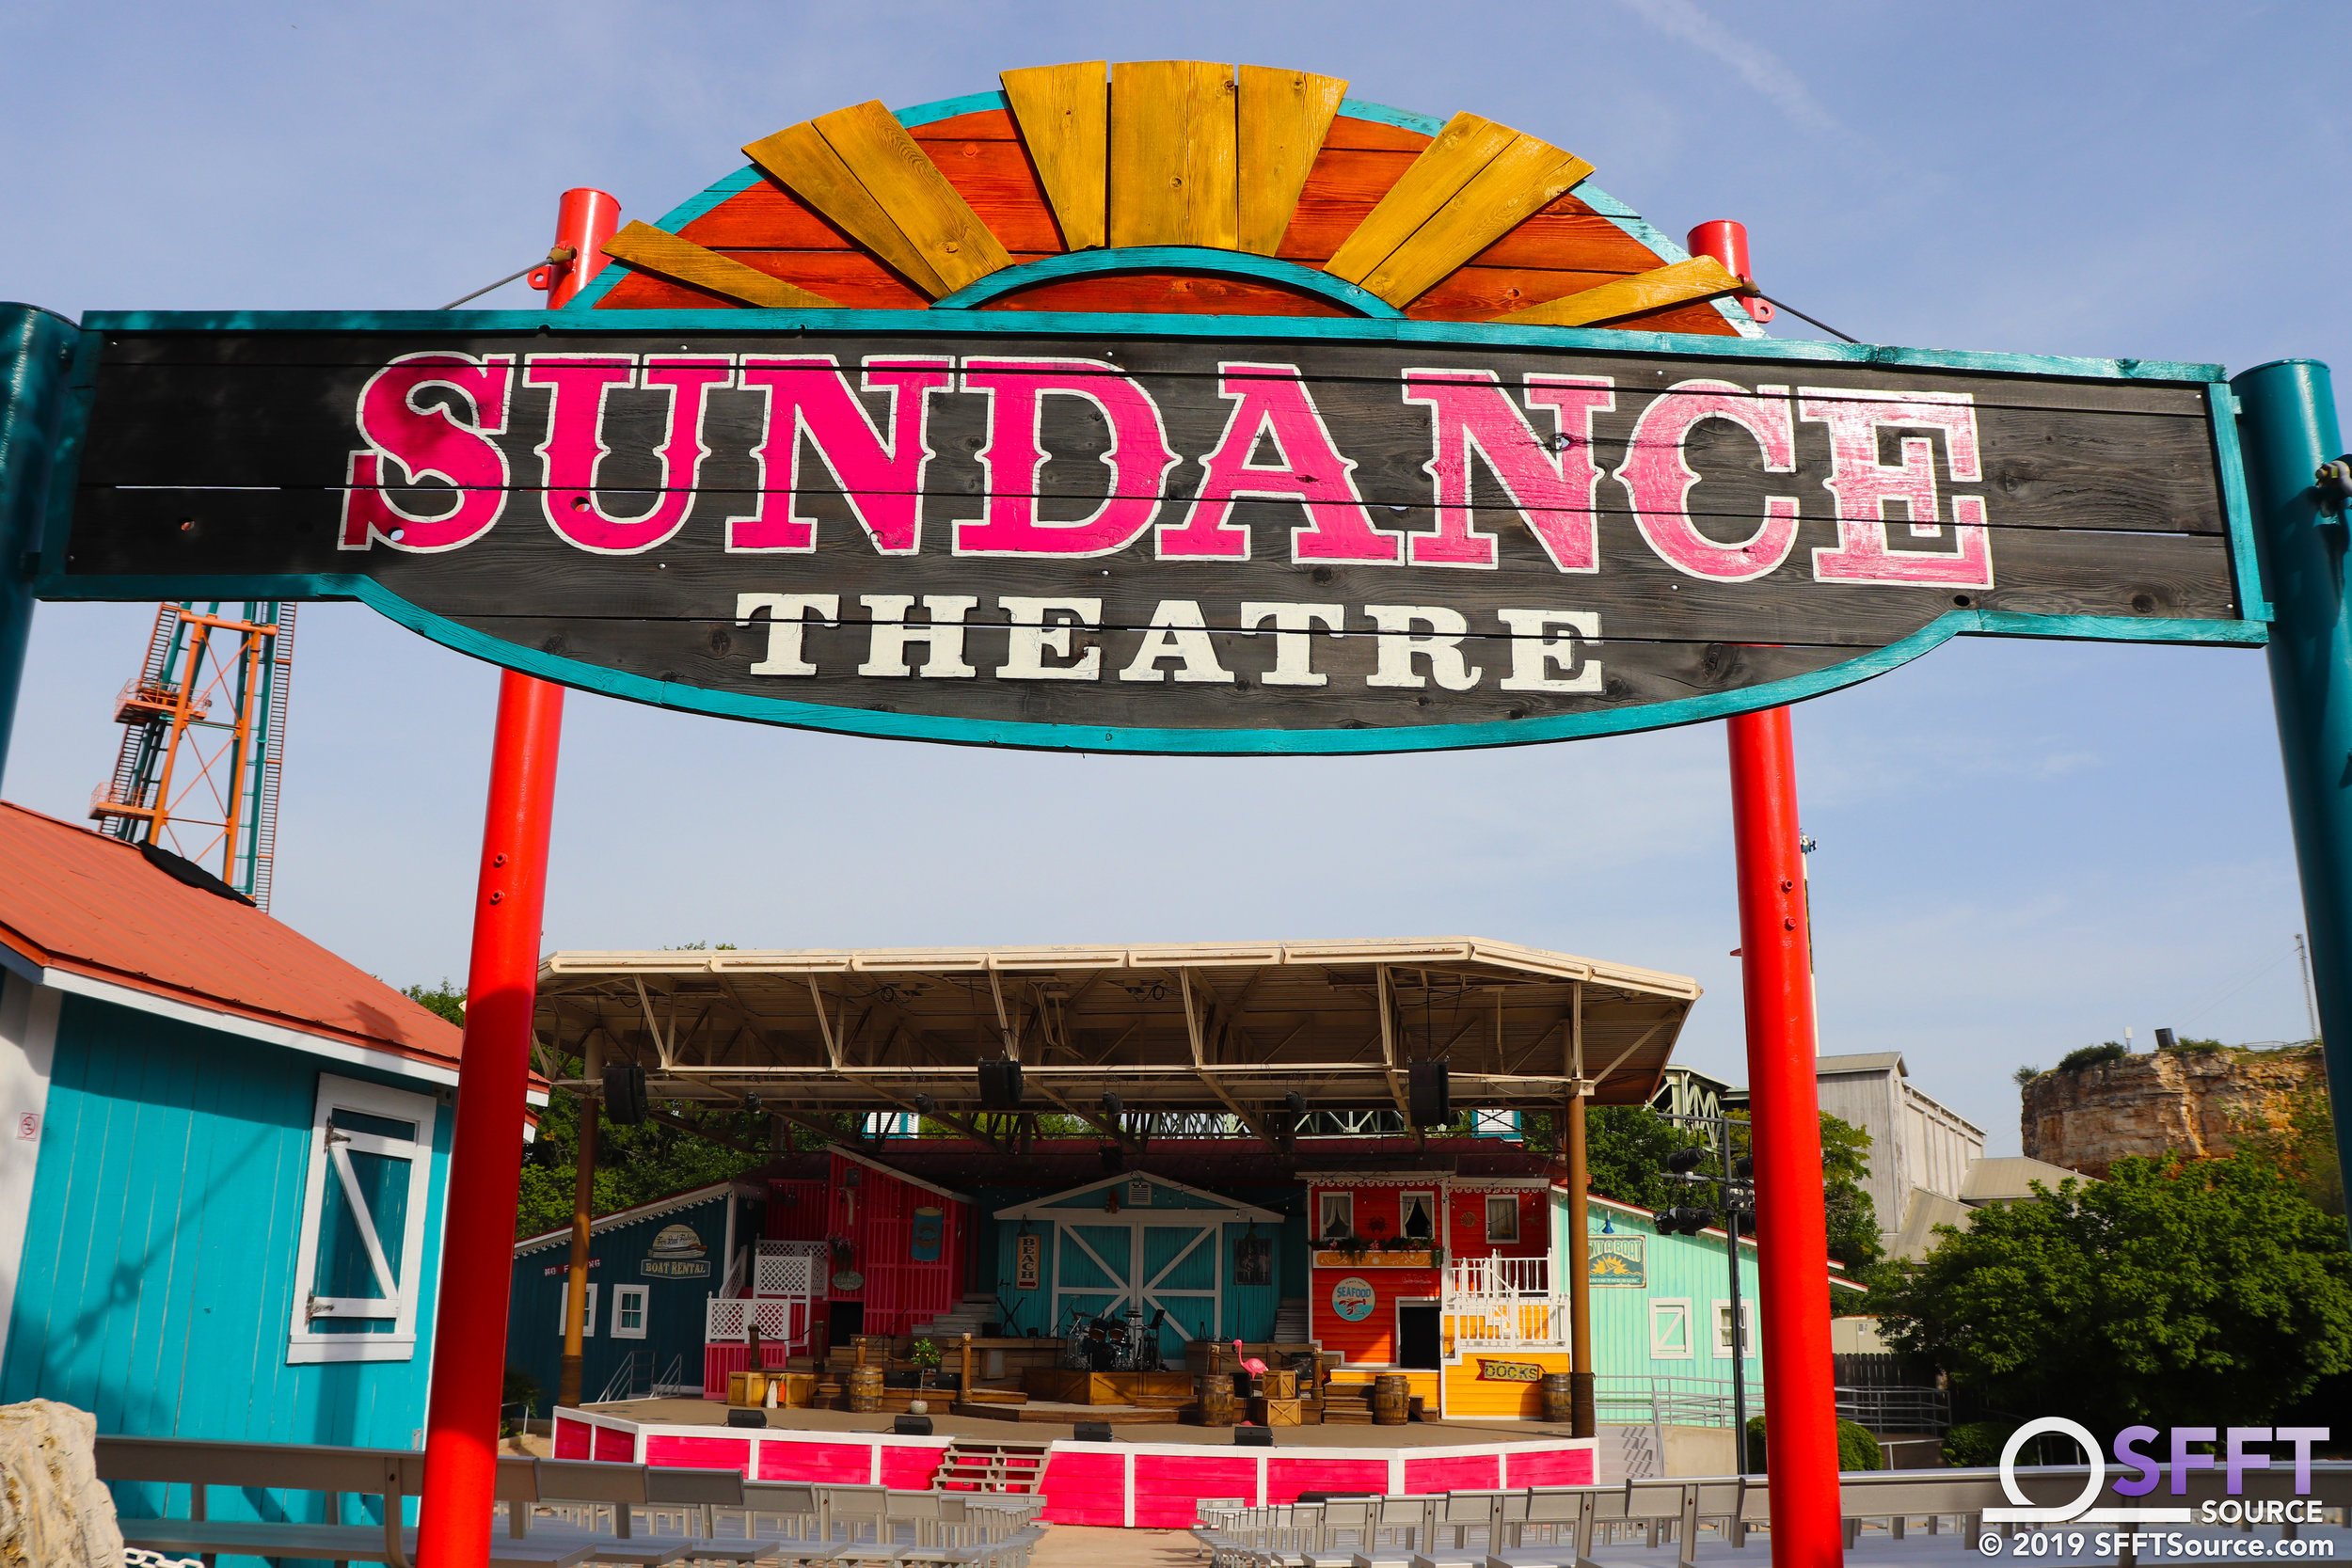 Sundance Theatre received a major refresh in 2019.